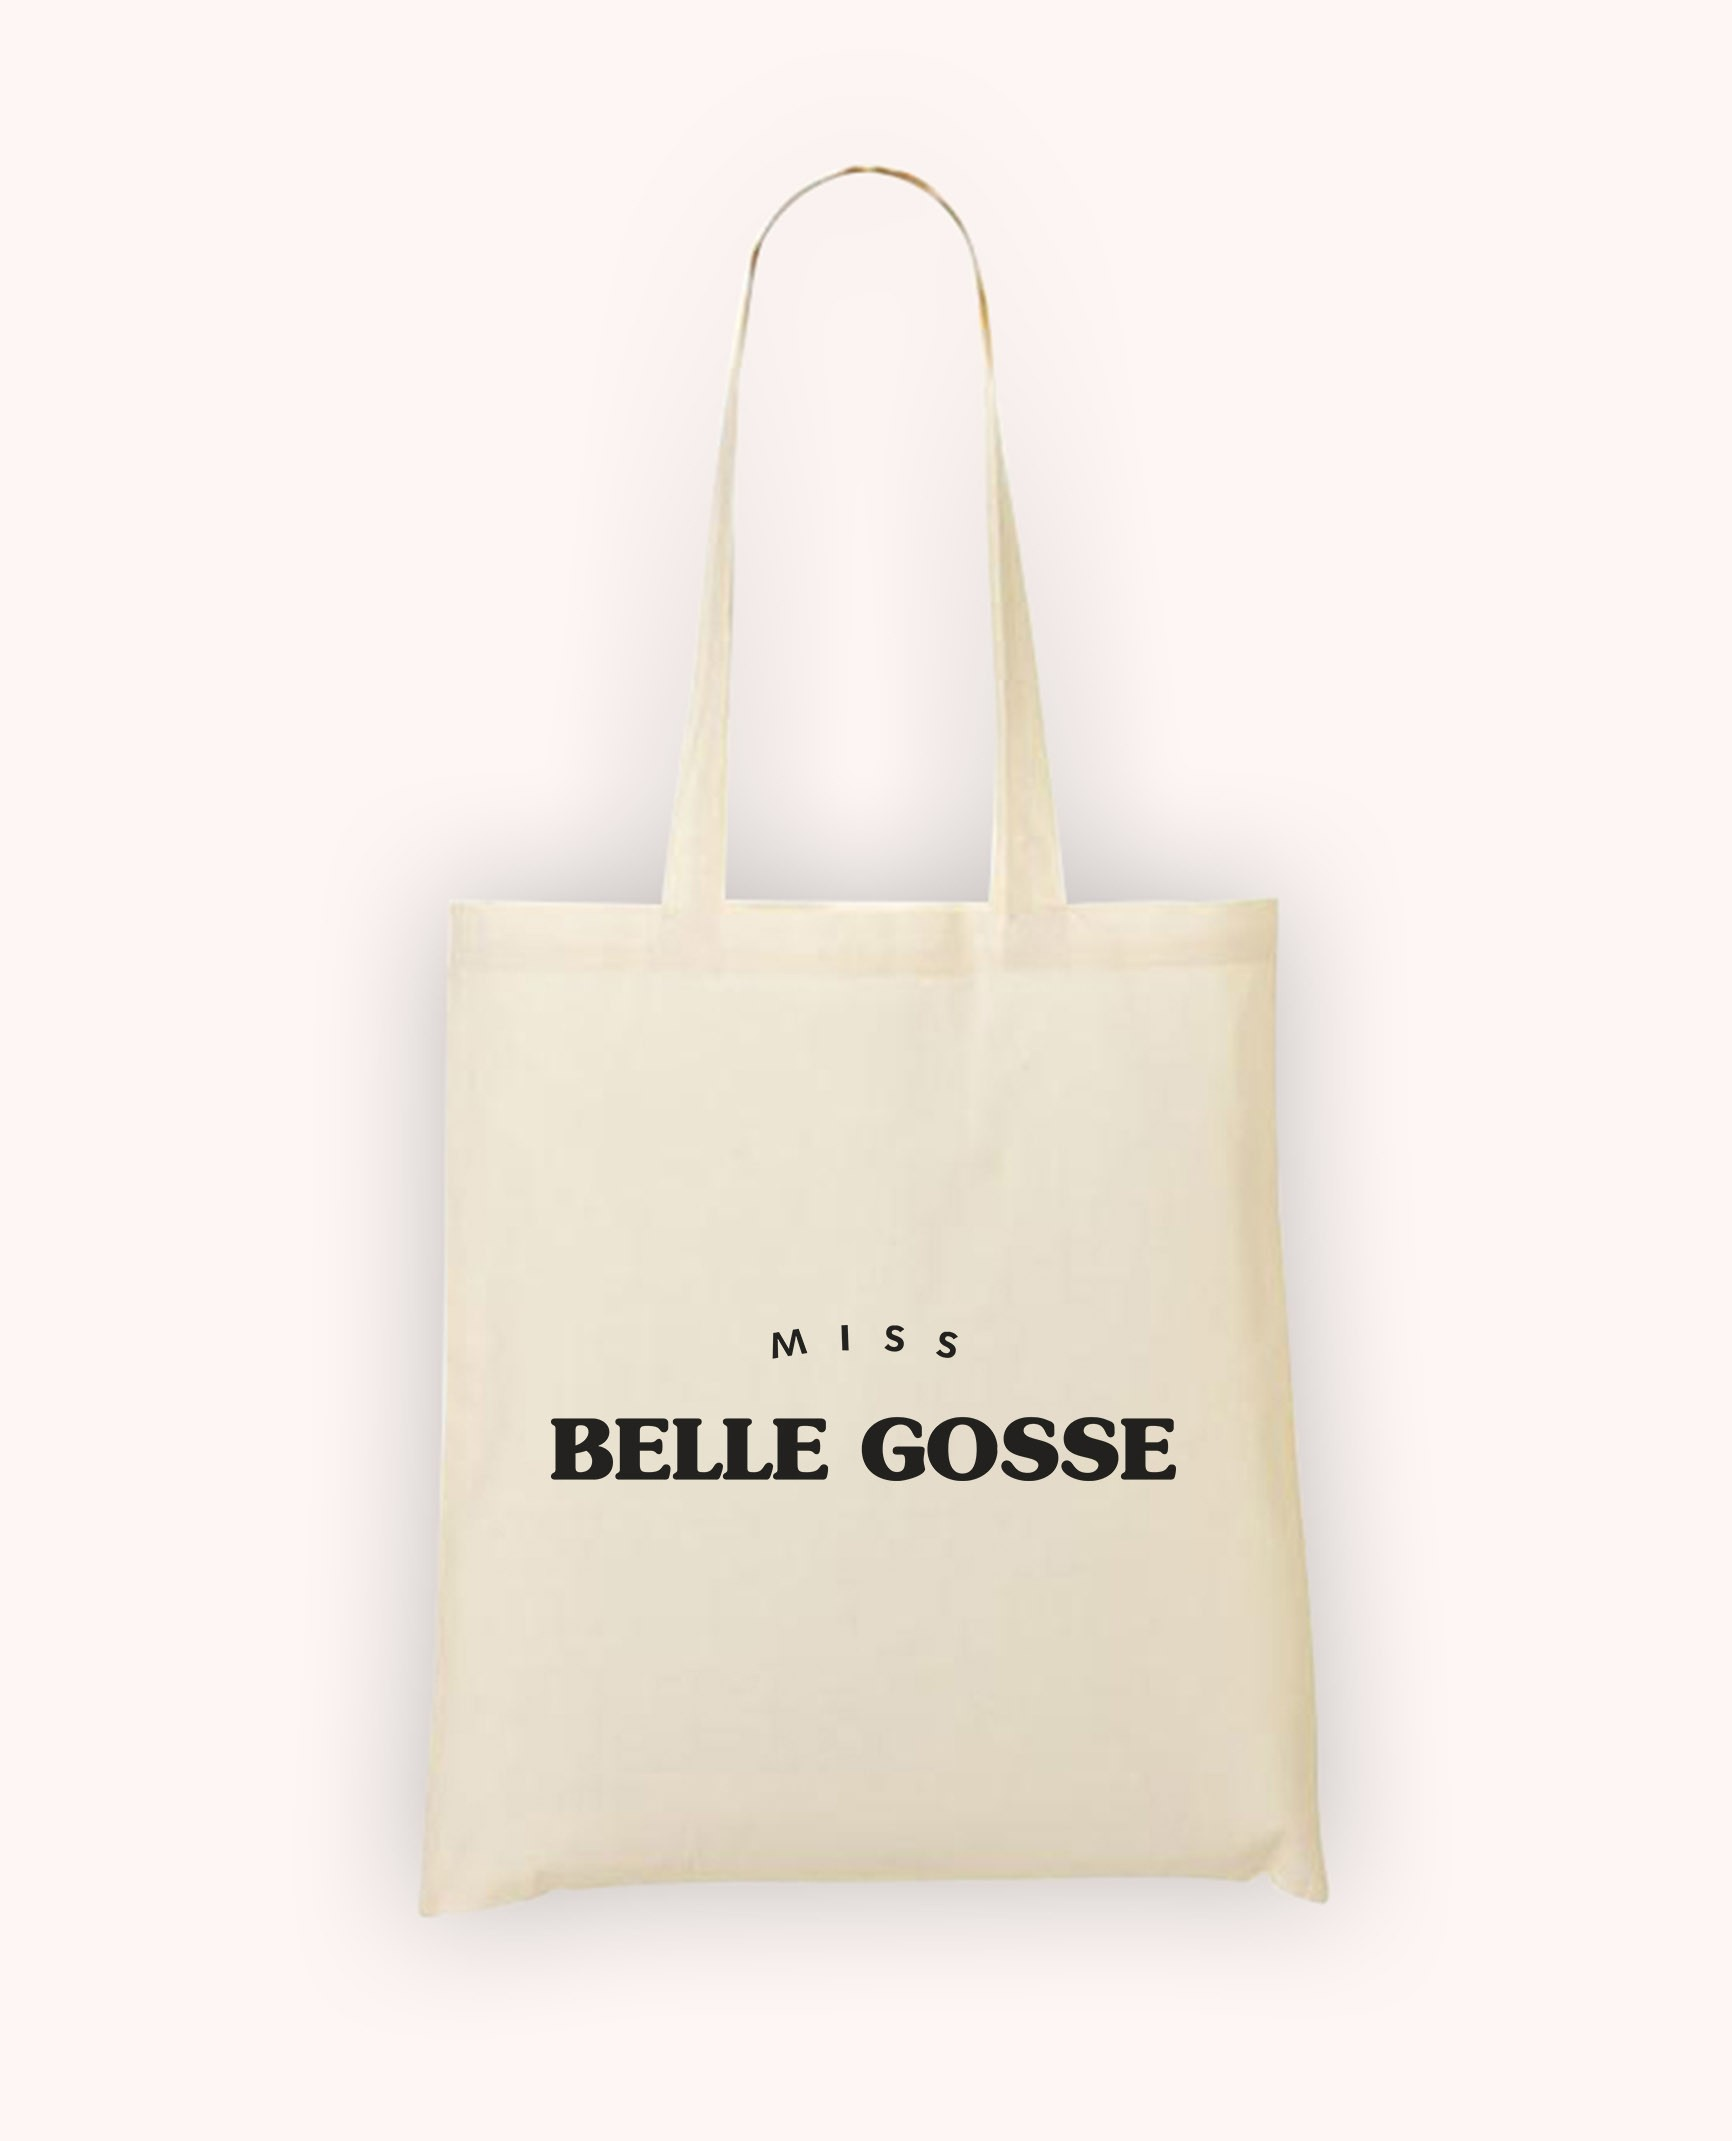 Totebag Miss Belle Gosse